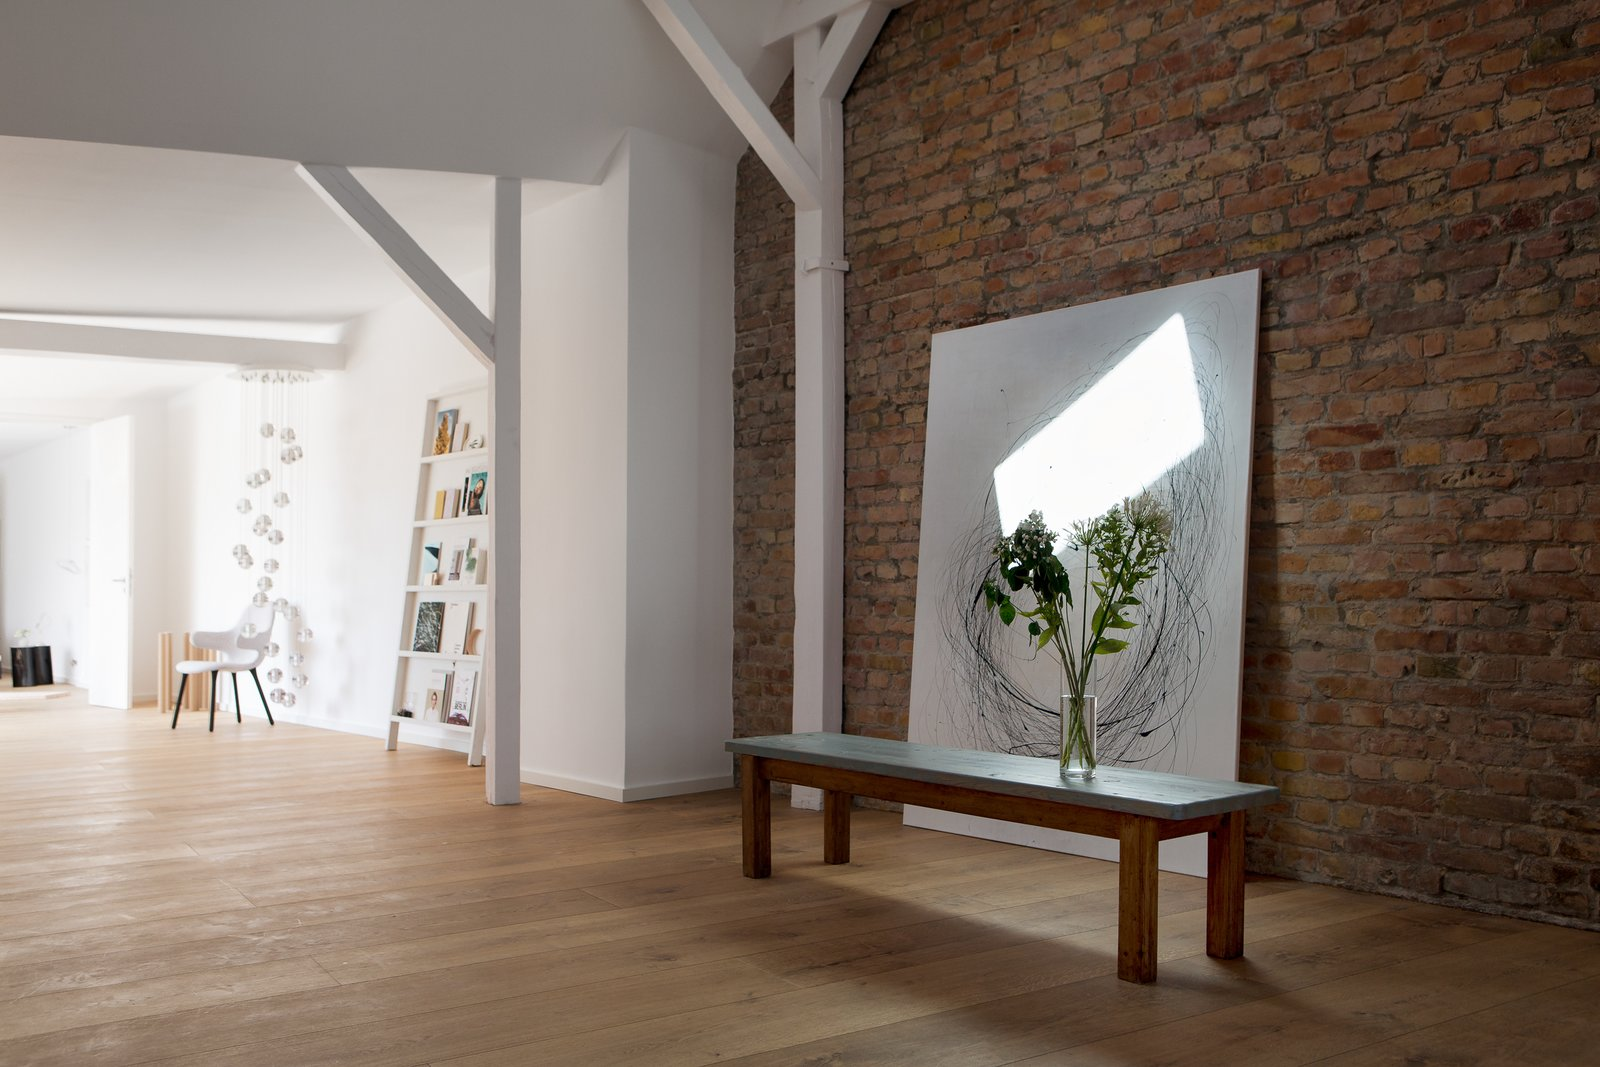 Medium Hardwood Floor, Floor Lighting, Sofa, End Tables, and Living Room  Photo 3 of 13 in This Modern Loft For Sale Will Have You Dreaming of Berlin